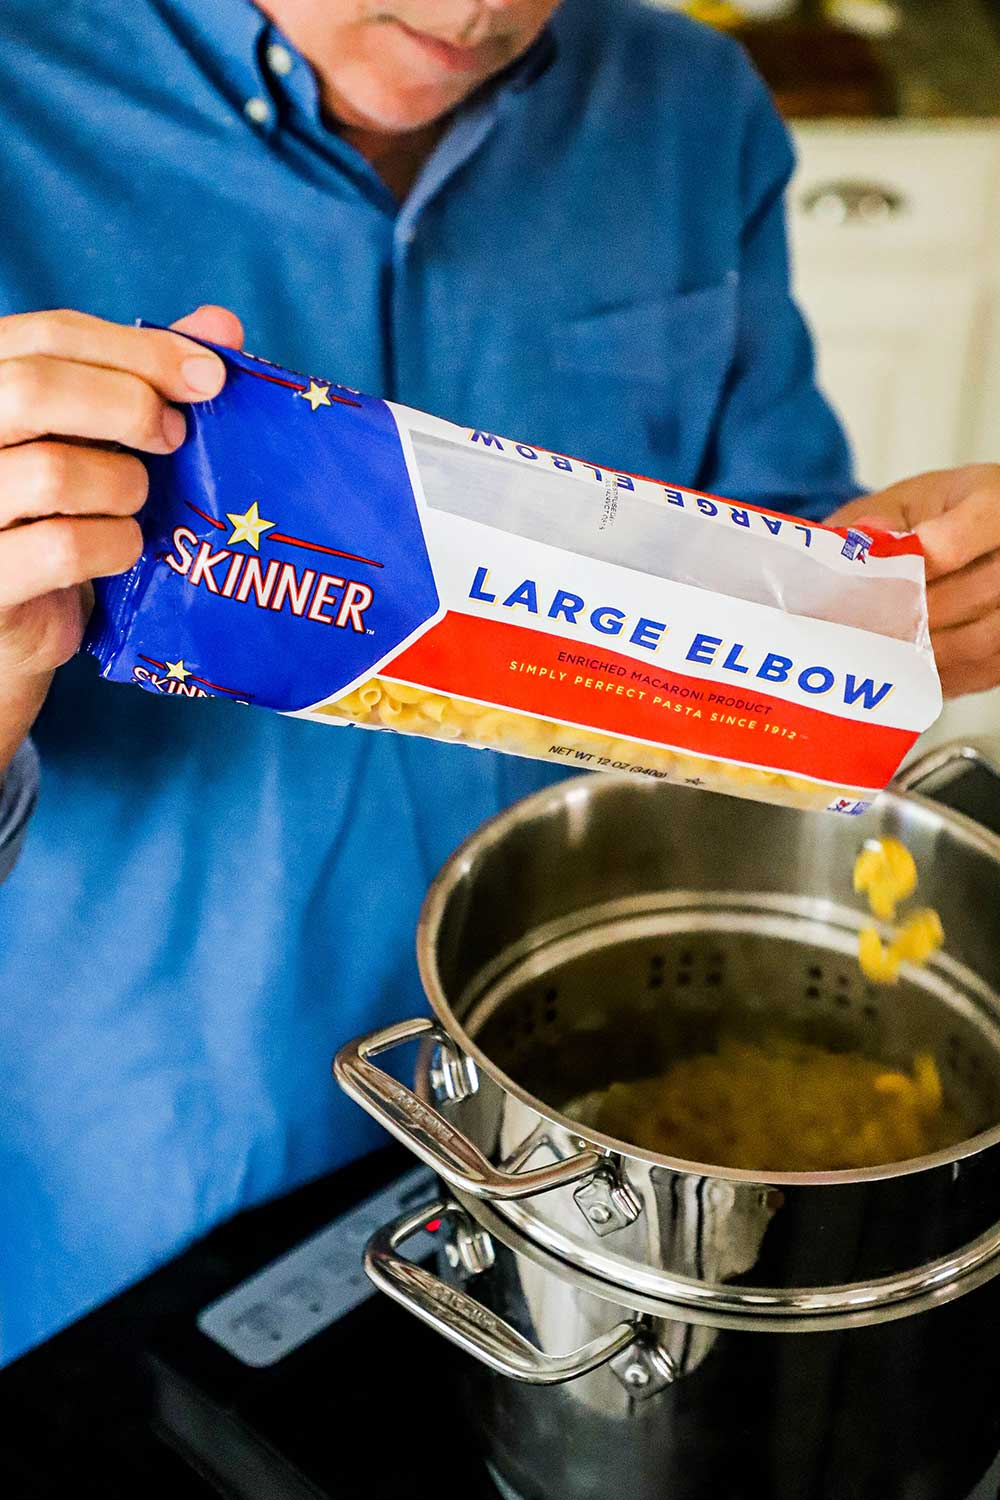 A man pouring elbow pasta from a bag into a pasta pan filled with boiling water.